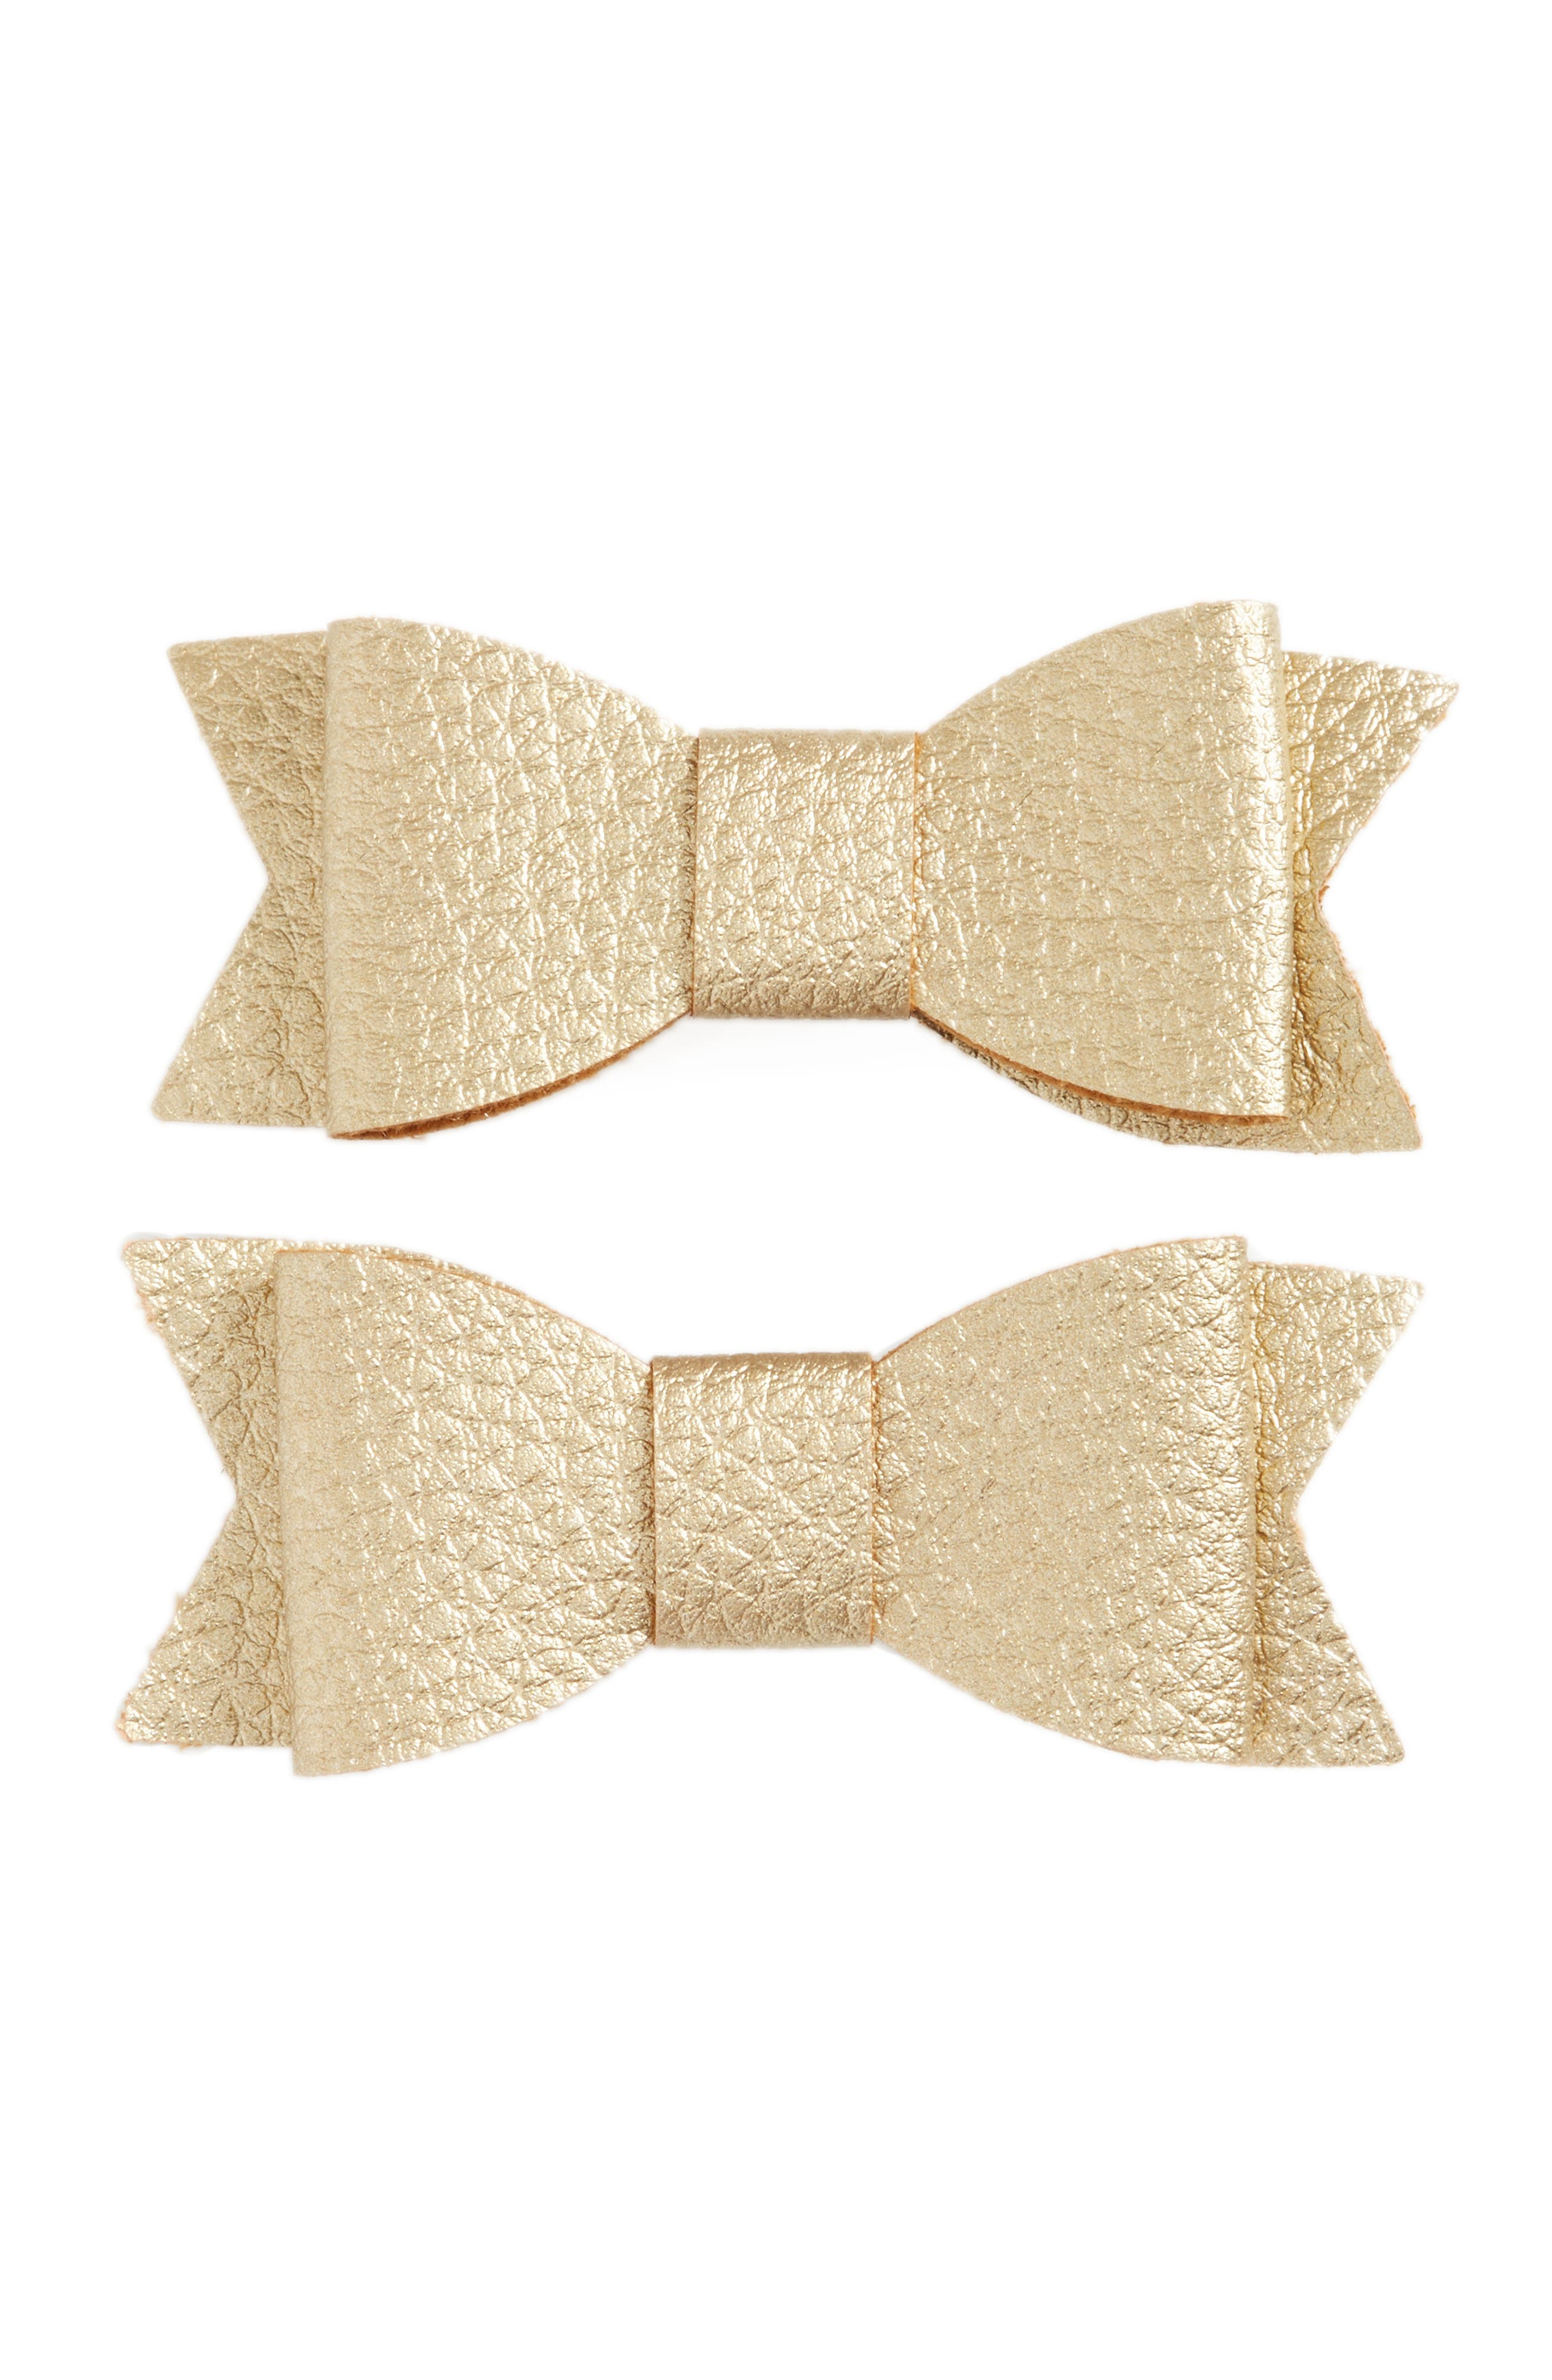 Alternate Image 1 Selected - Baby Bling 2-Pack Bow Clips (Baby Girls)